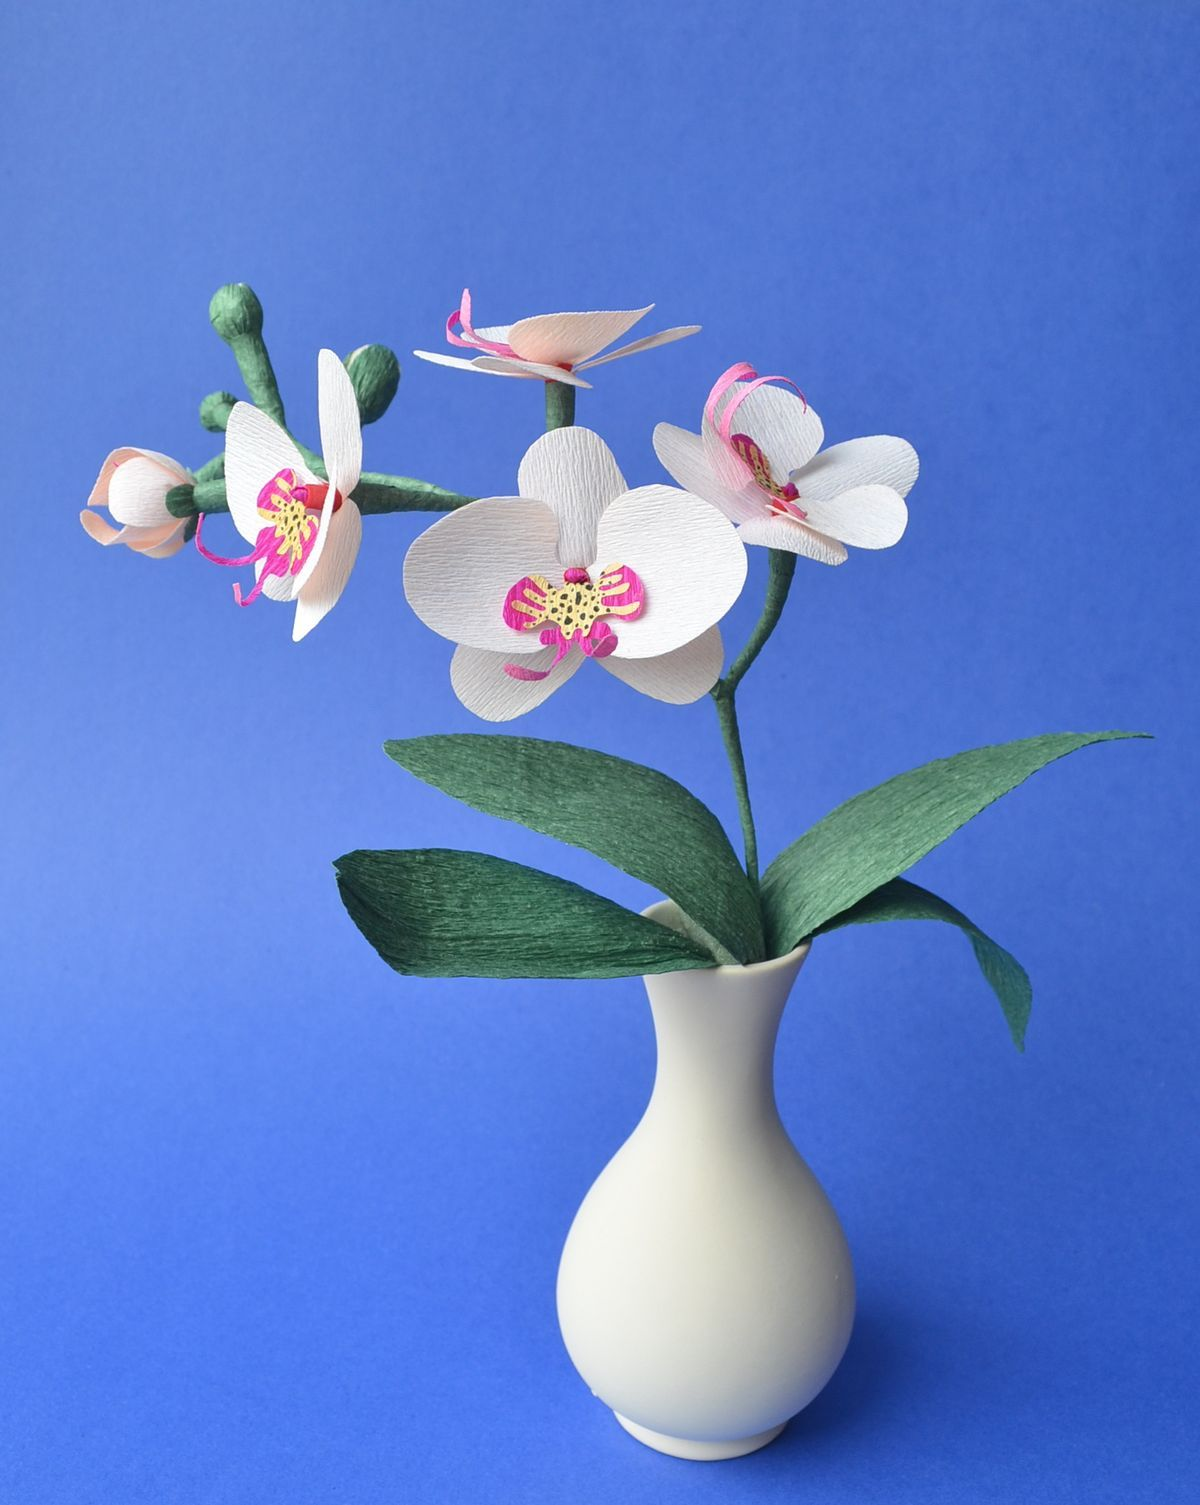 Pin By Diana Barrera On Flores Pinterest Flowers Craft And